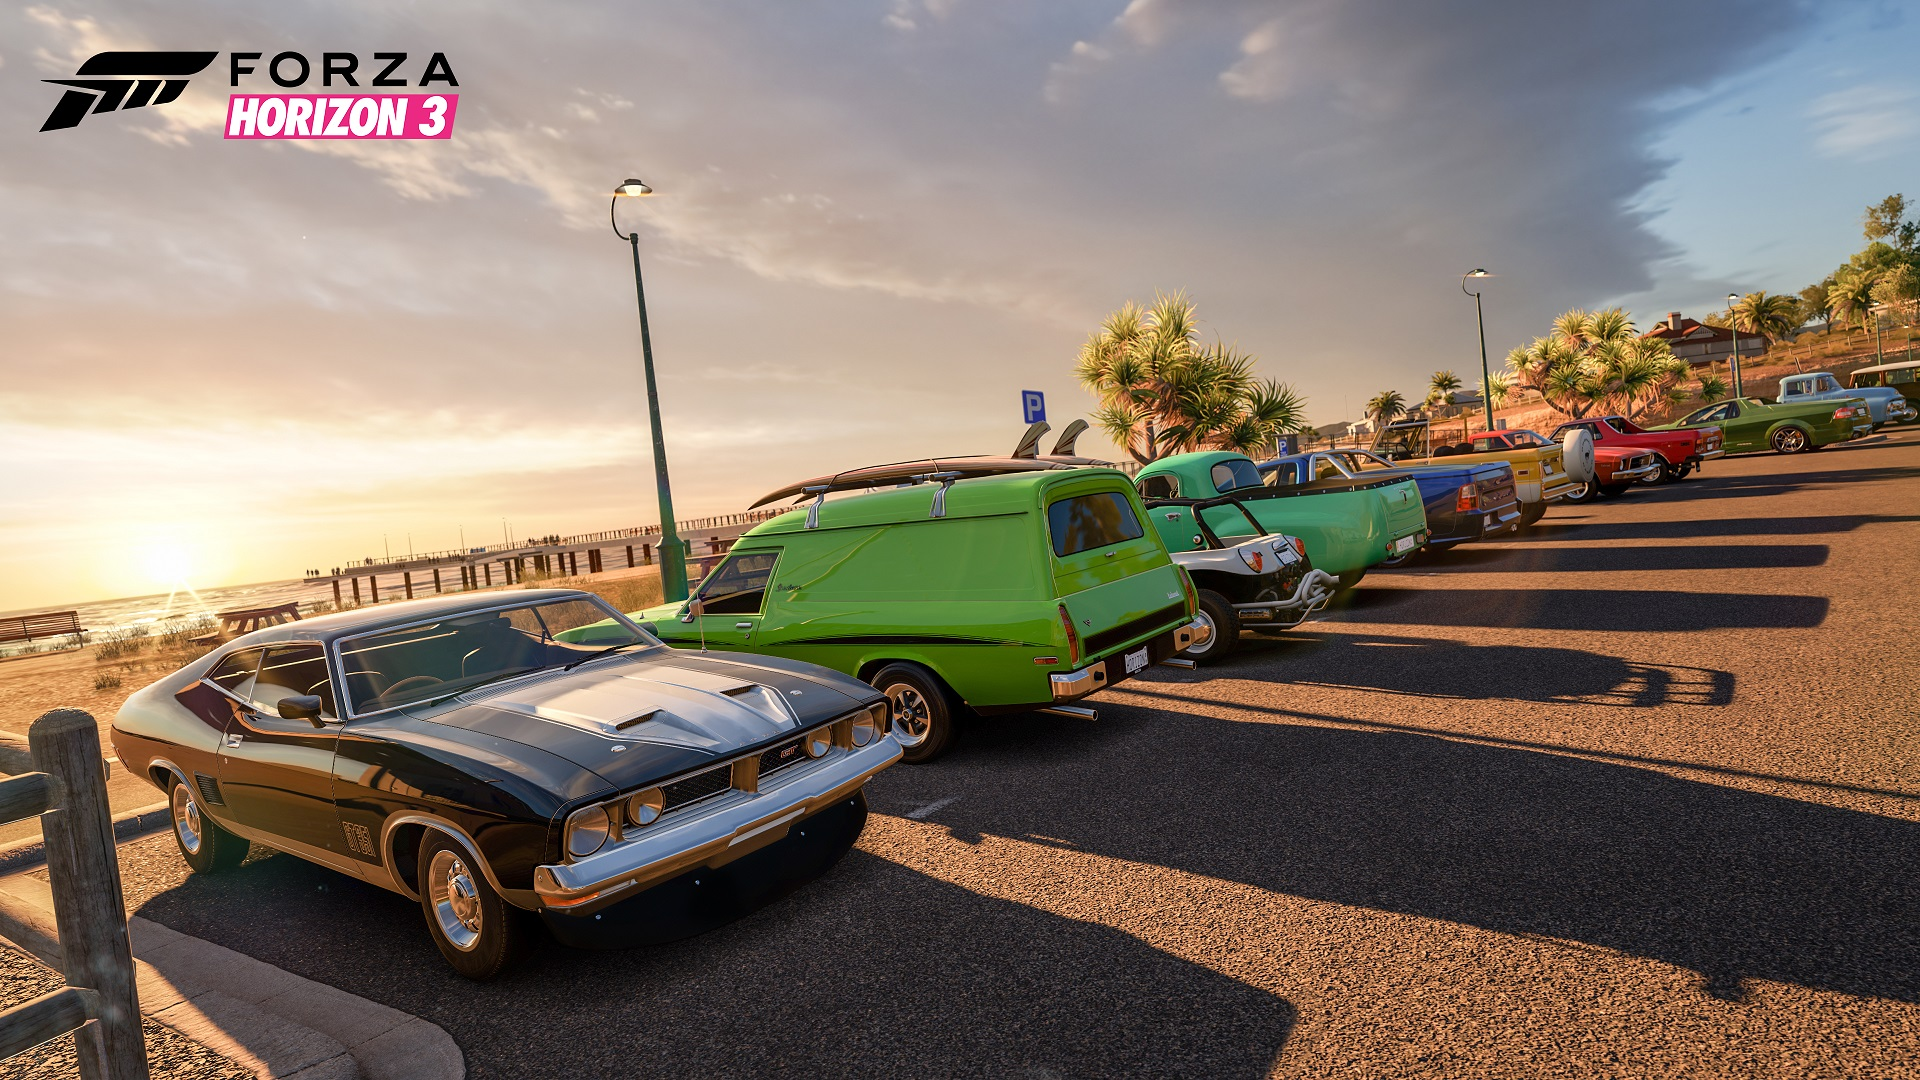 Forza Street now available for Windows 10 PC and Mobile Devices ForzaHorizon3_BeachParking-1-hero.jpg